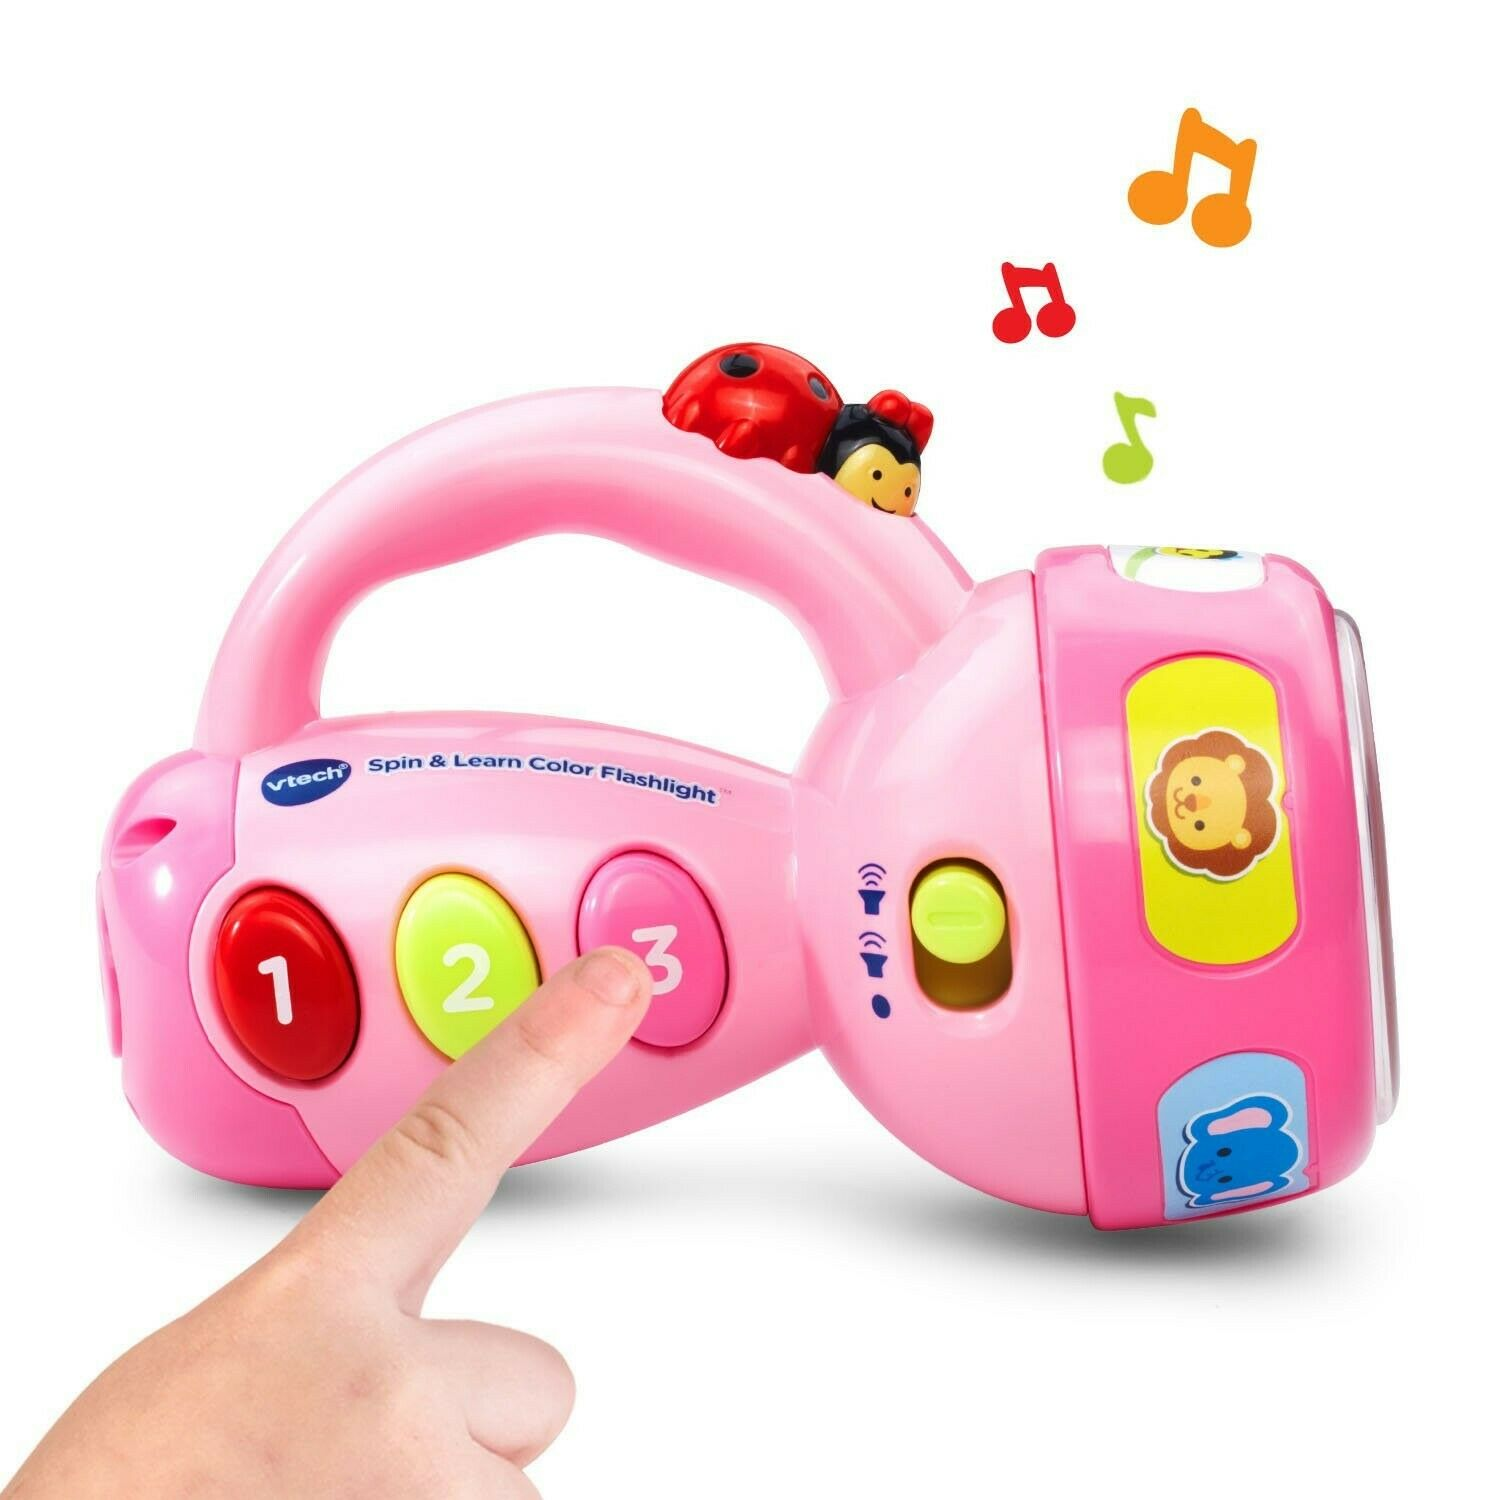 Pink VTech Spin and Learn Color Flashlight  Exclusive